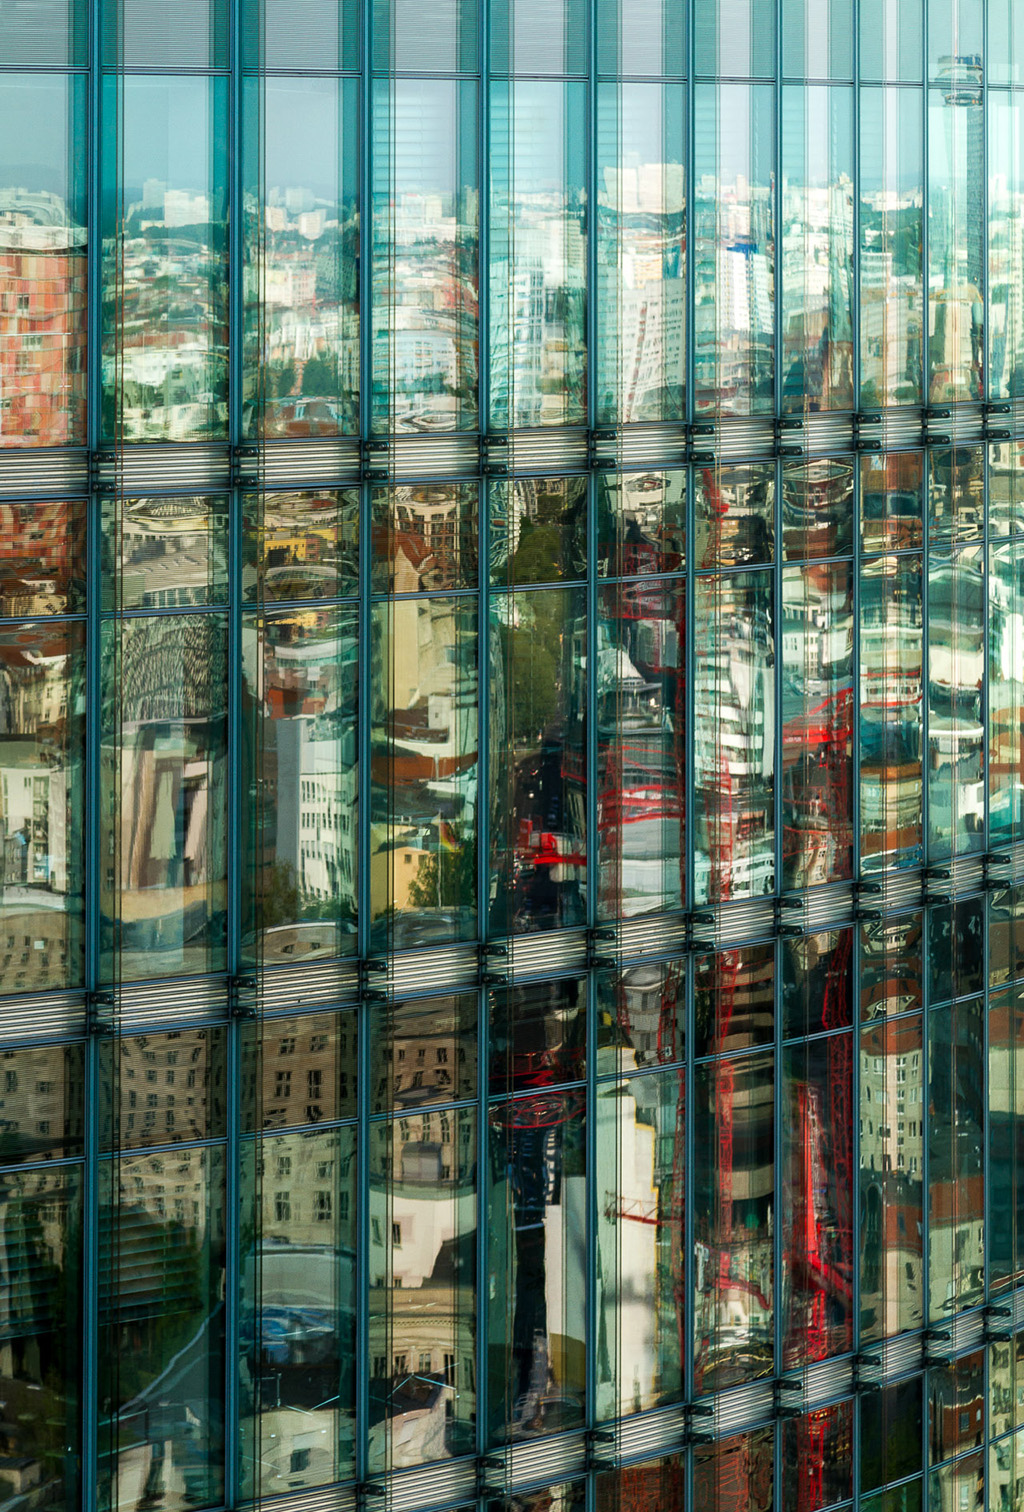 Colours of the city  Patterns reflected on the Murphy+Jahn designed Bahntower in Postdamer Platz, Berlin.